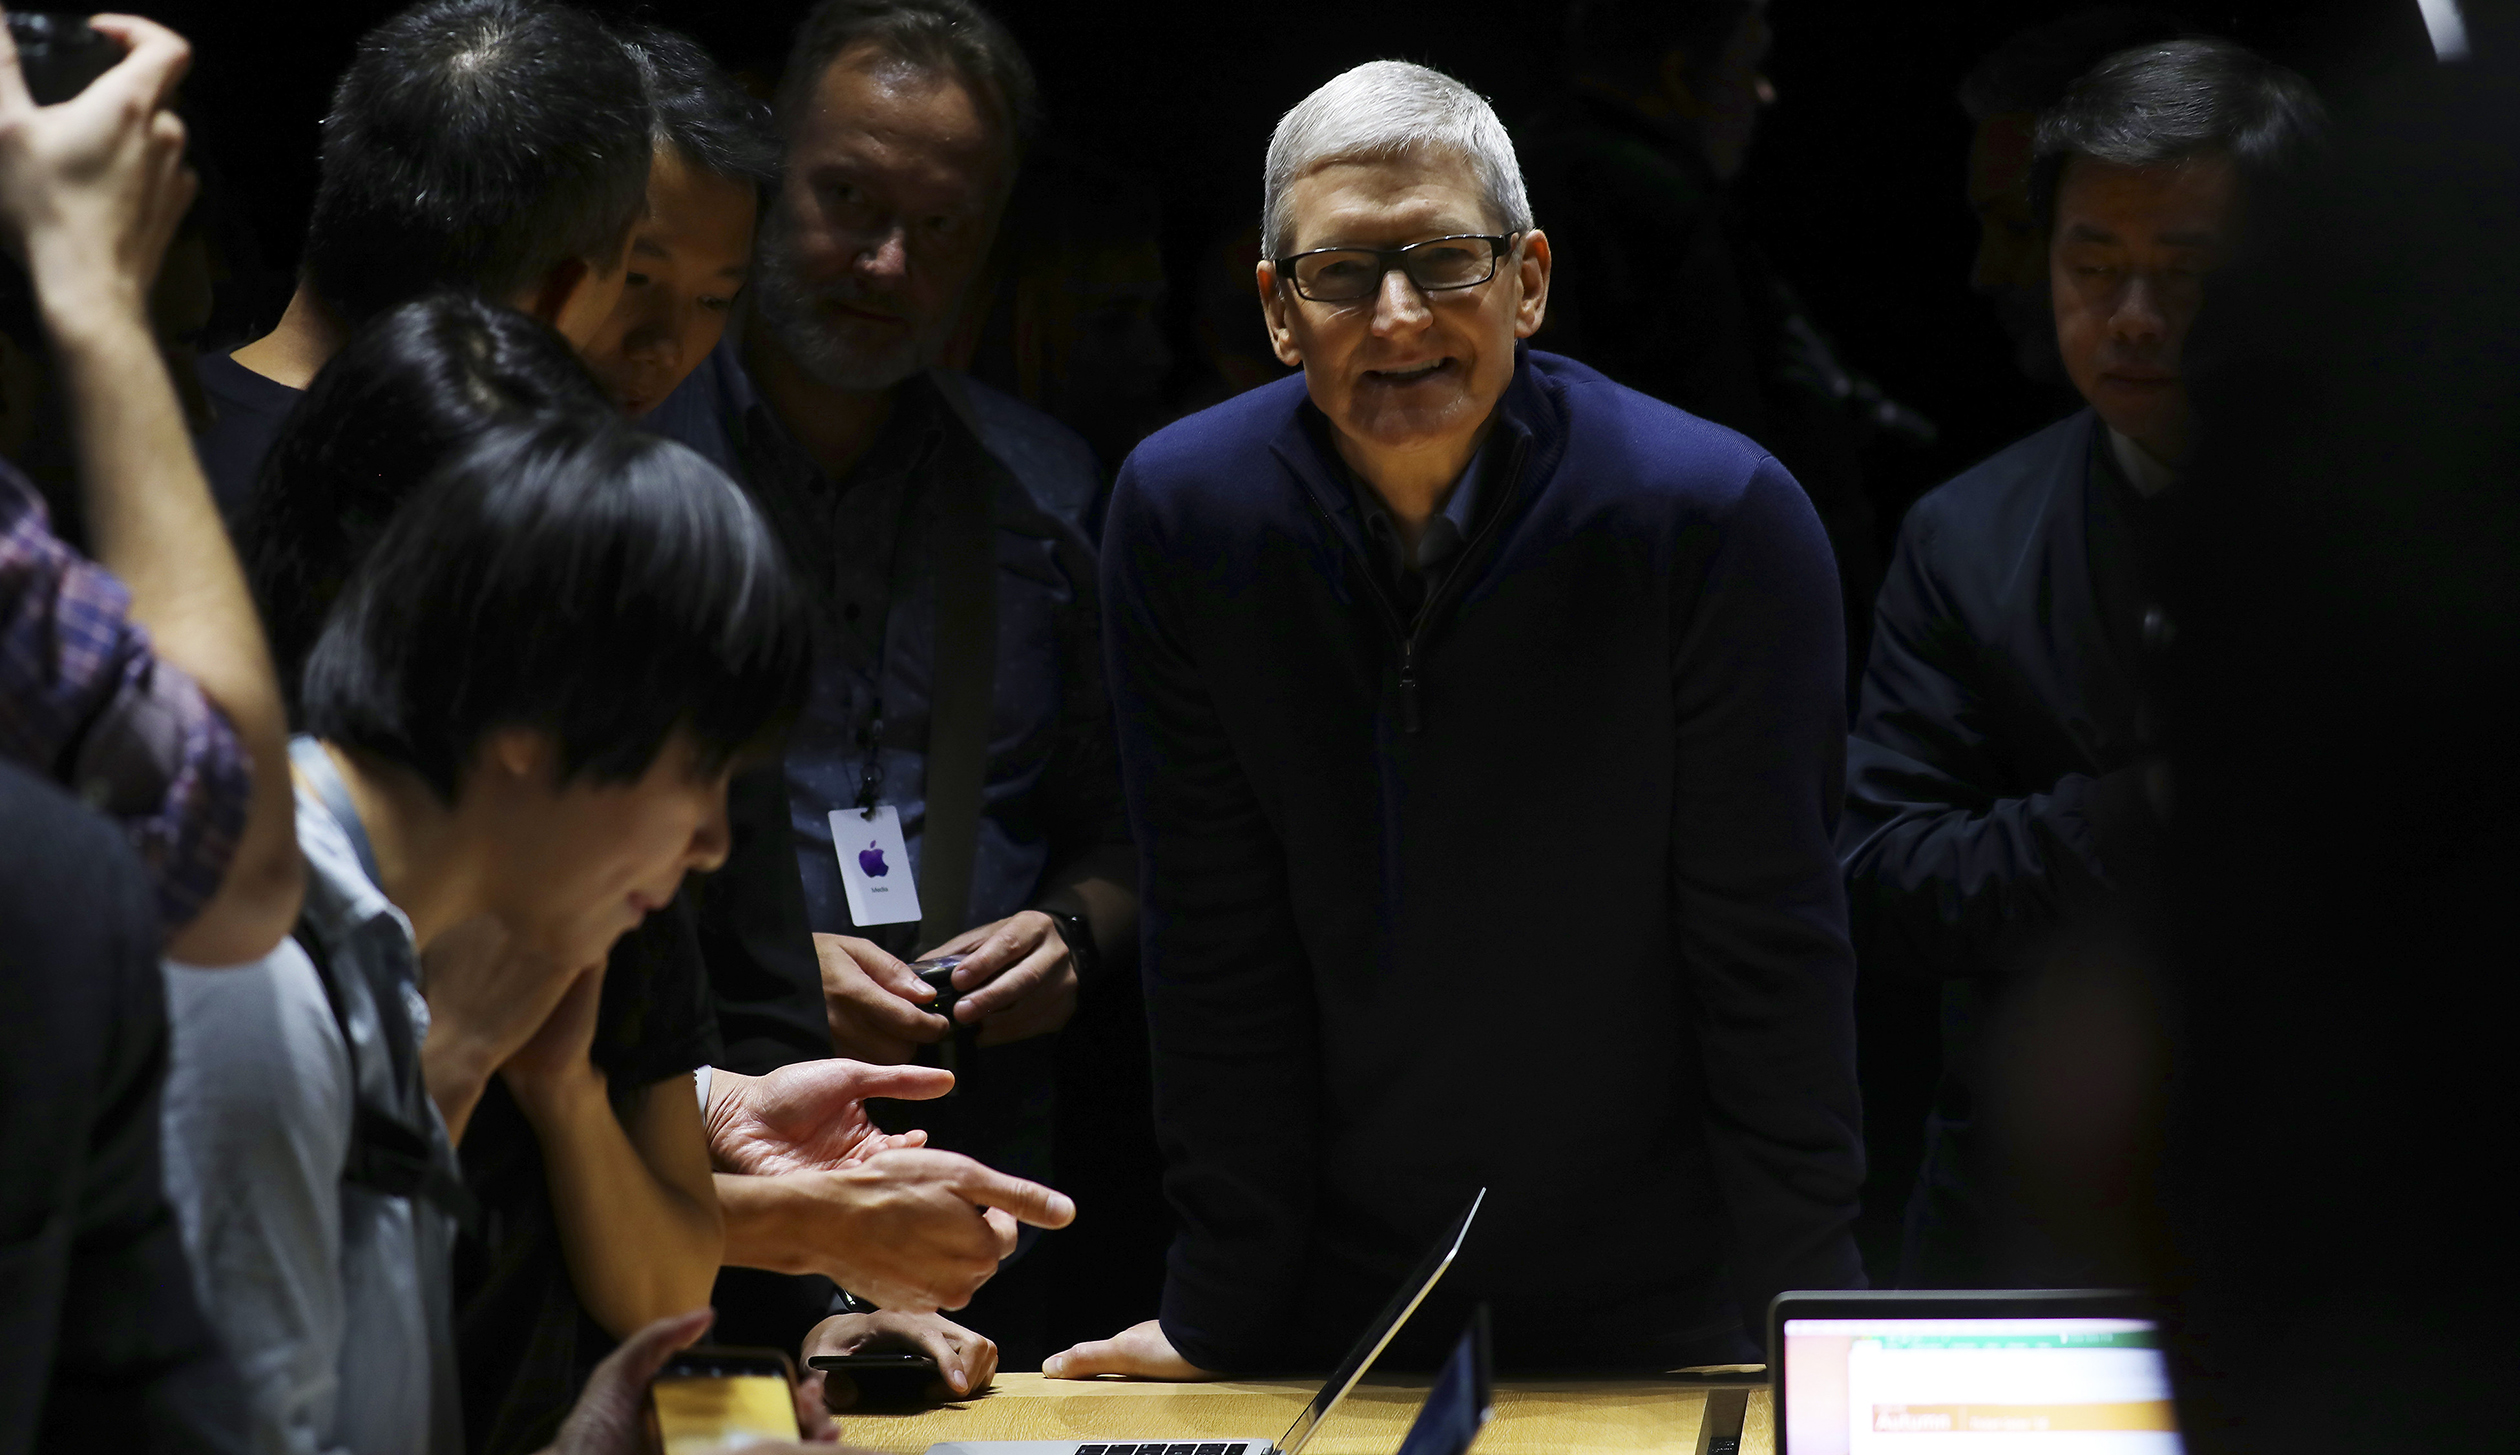 Tim Cook, the chief executive of Apple, in a demonstration area during the unveiling of the new MacBook Pro at Apple headquarters in Cupertino, Calif.